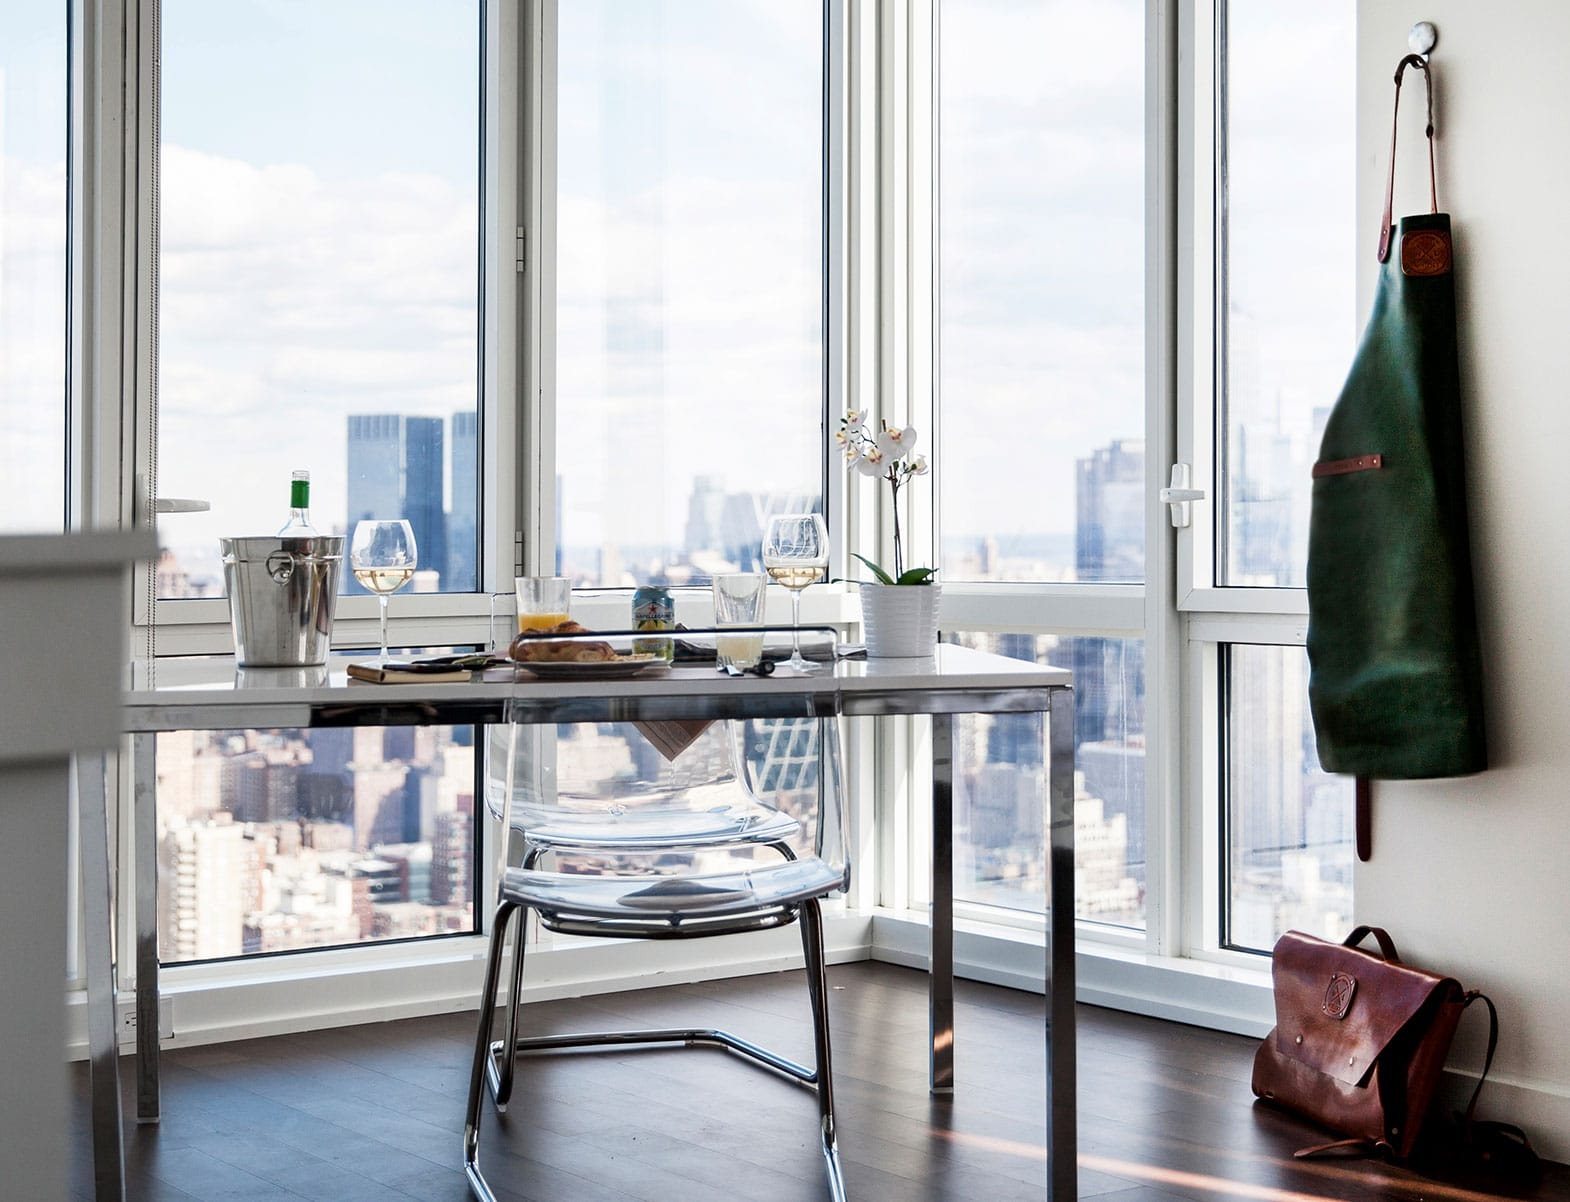 WITLOFT Penthouse in NYC Story breakfast view